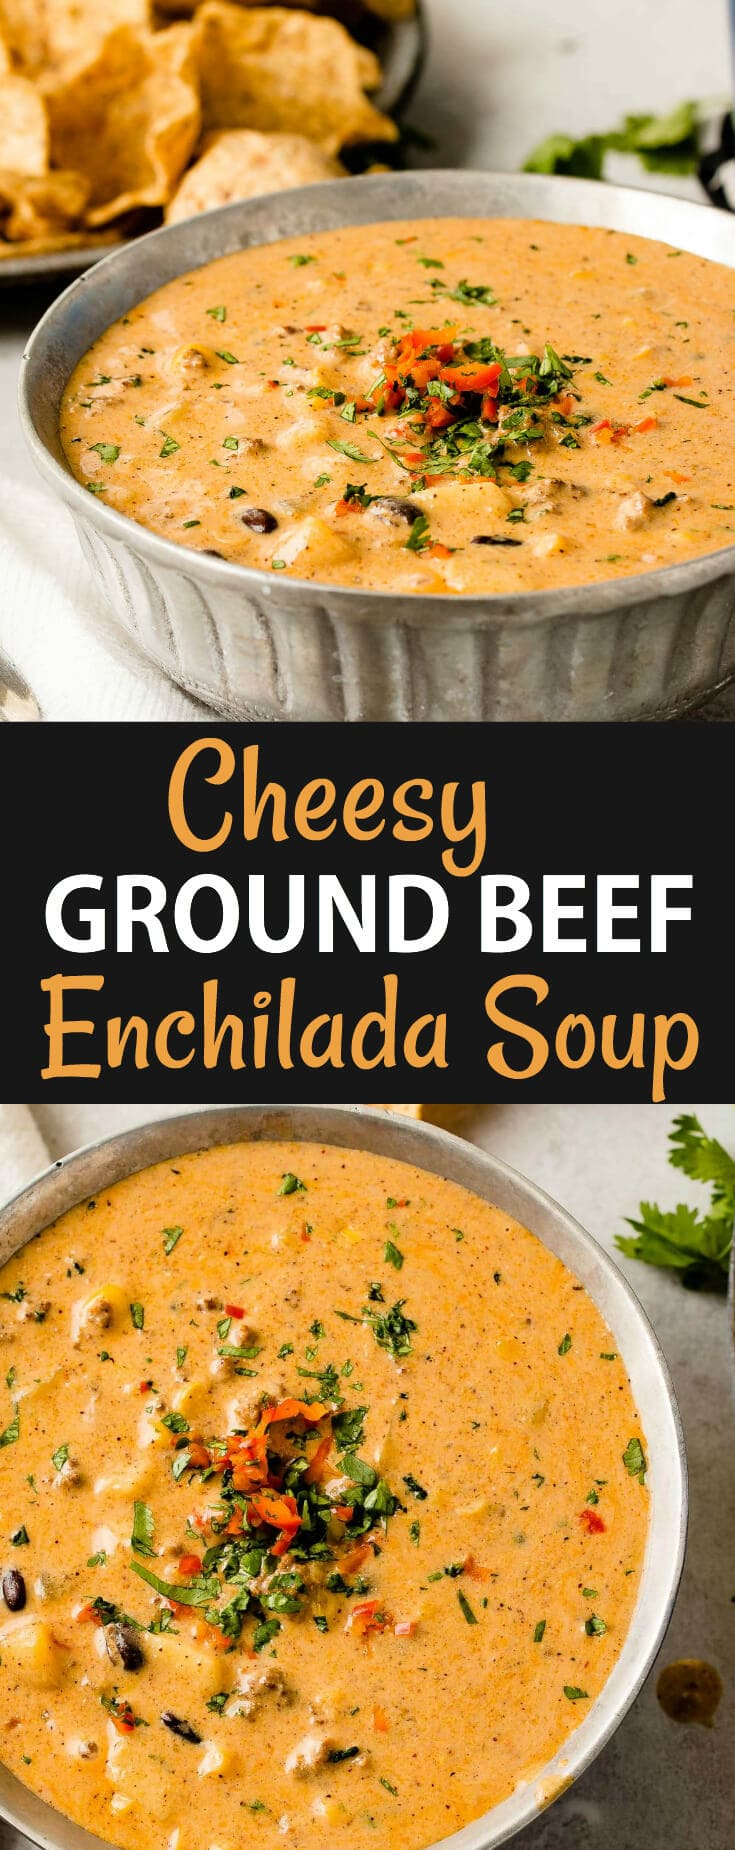 We took our favorite Cheesy Southwestern Chicken Tortilla Soup and turned it into a cheesy ground beef enchilada chili! It's such an easy chili!